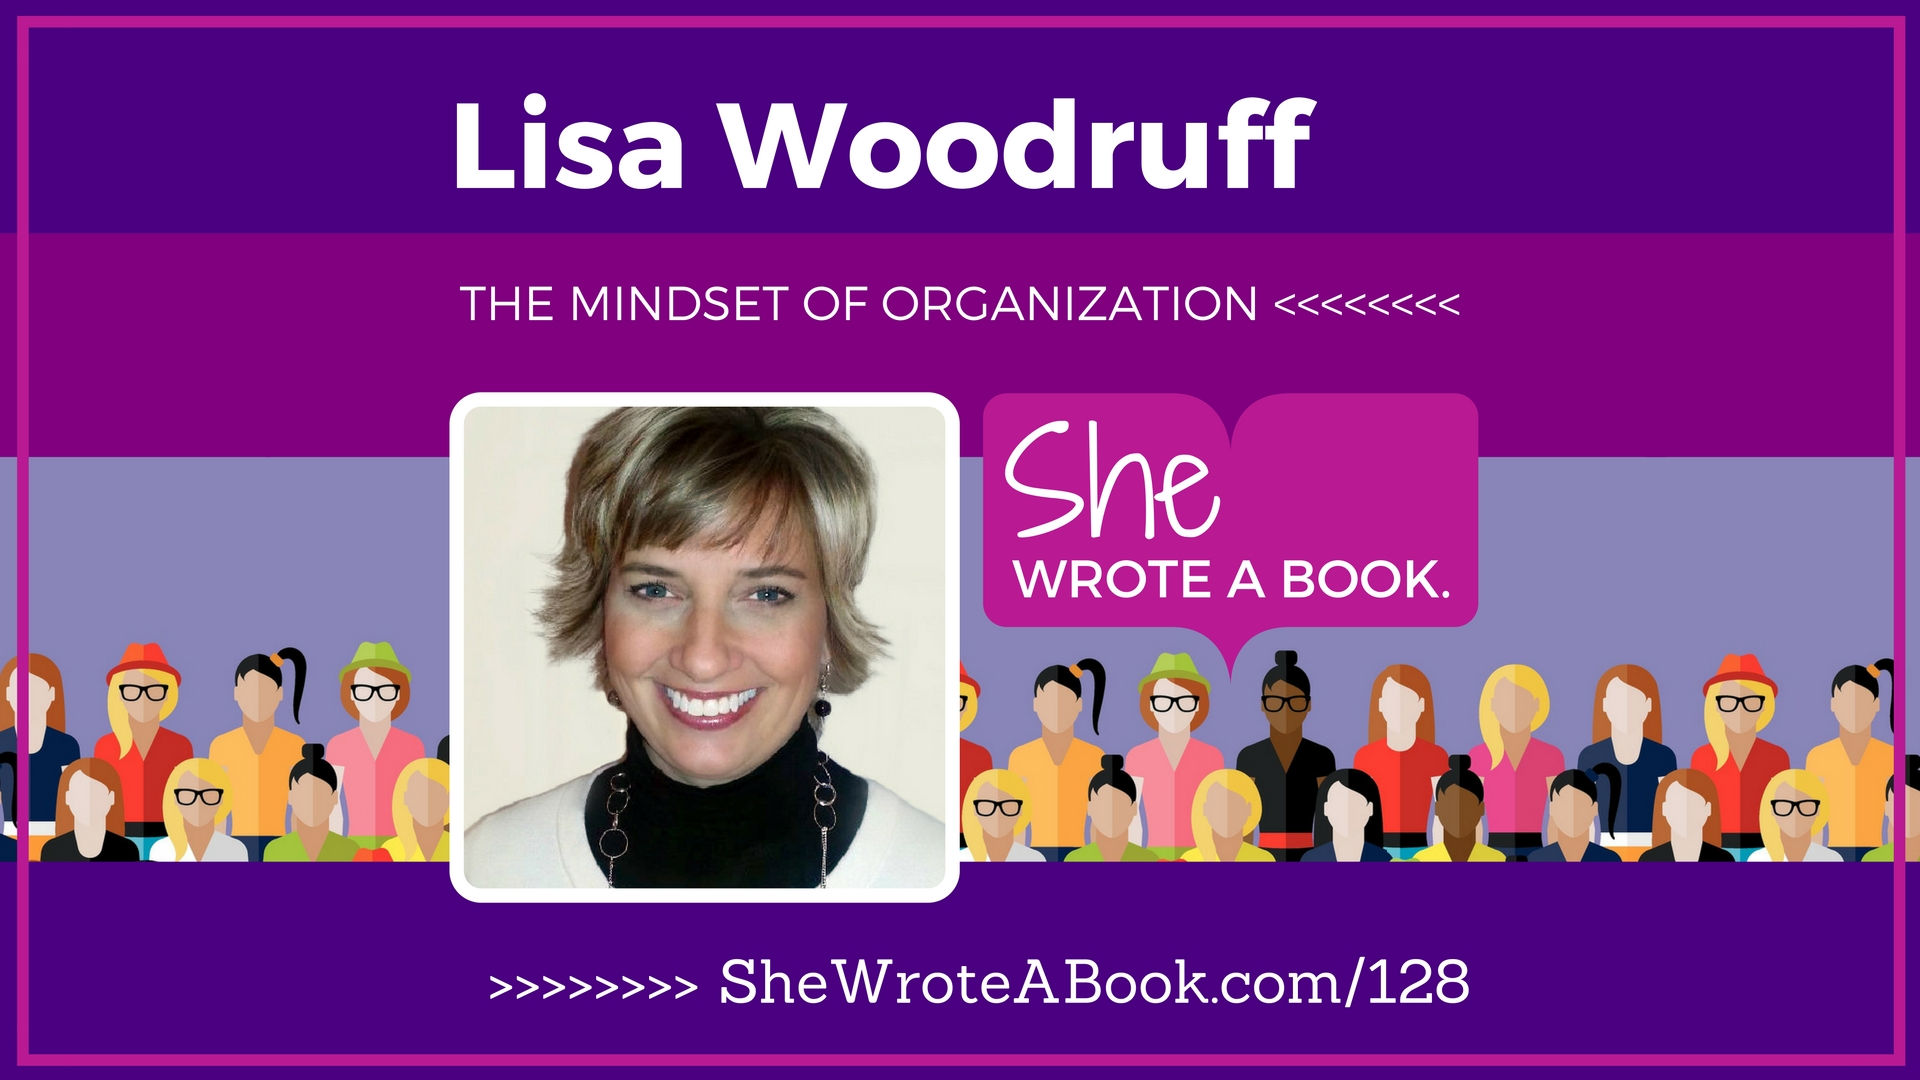 128-She-Wrote-A-Book-Lisa-Woodruff-The-Mindset-Of-Organization